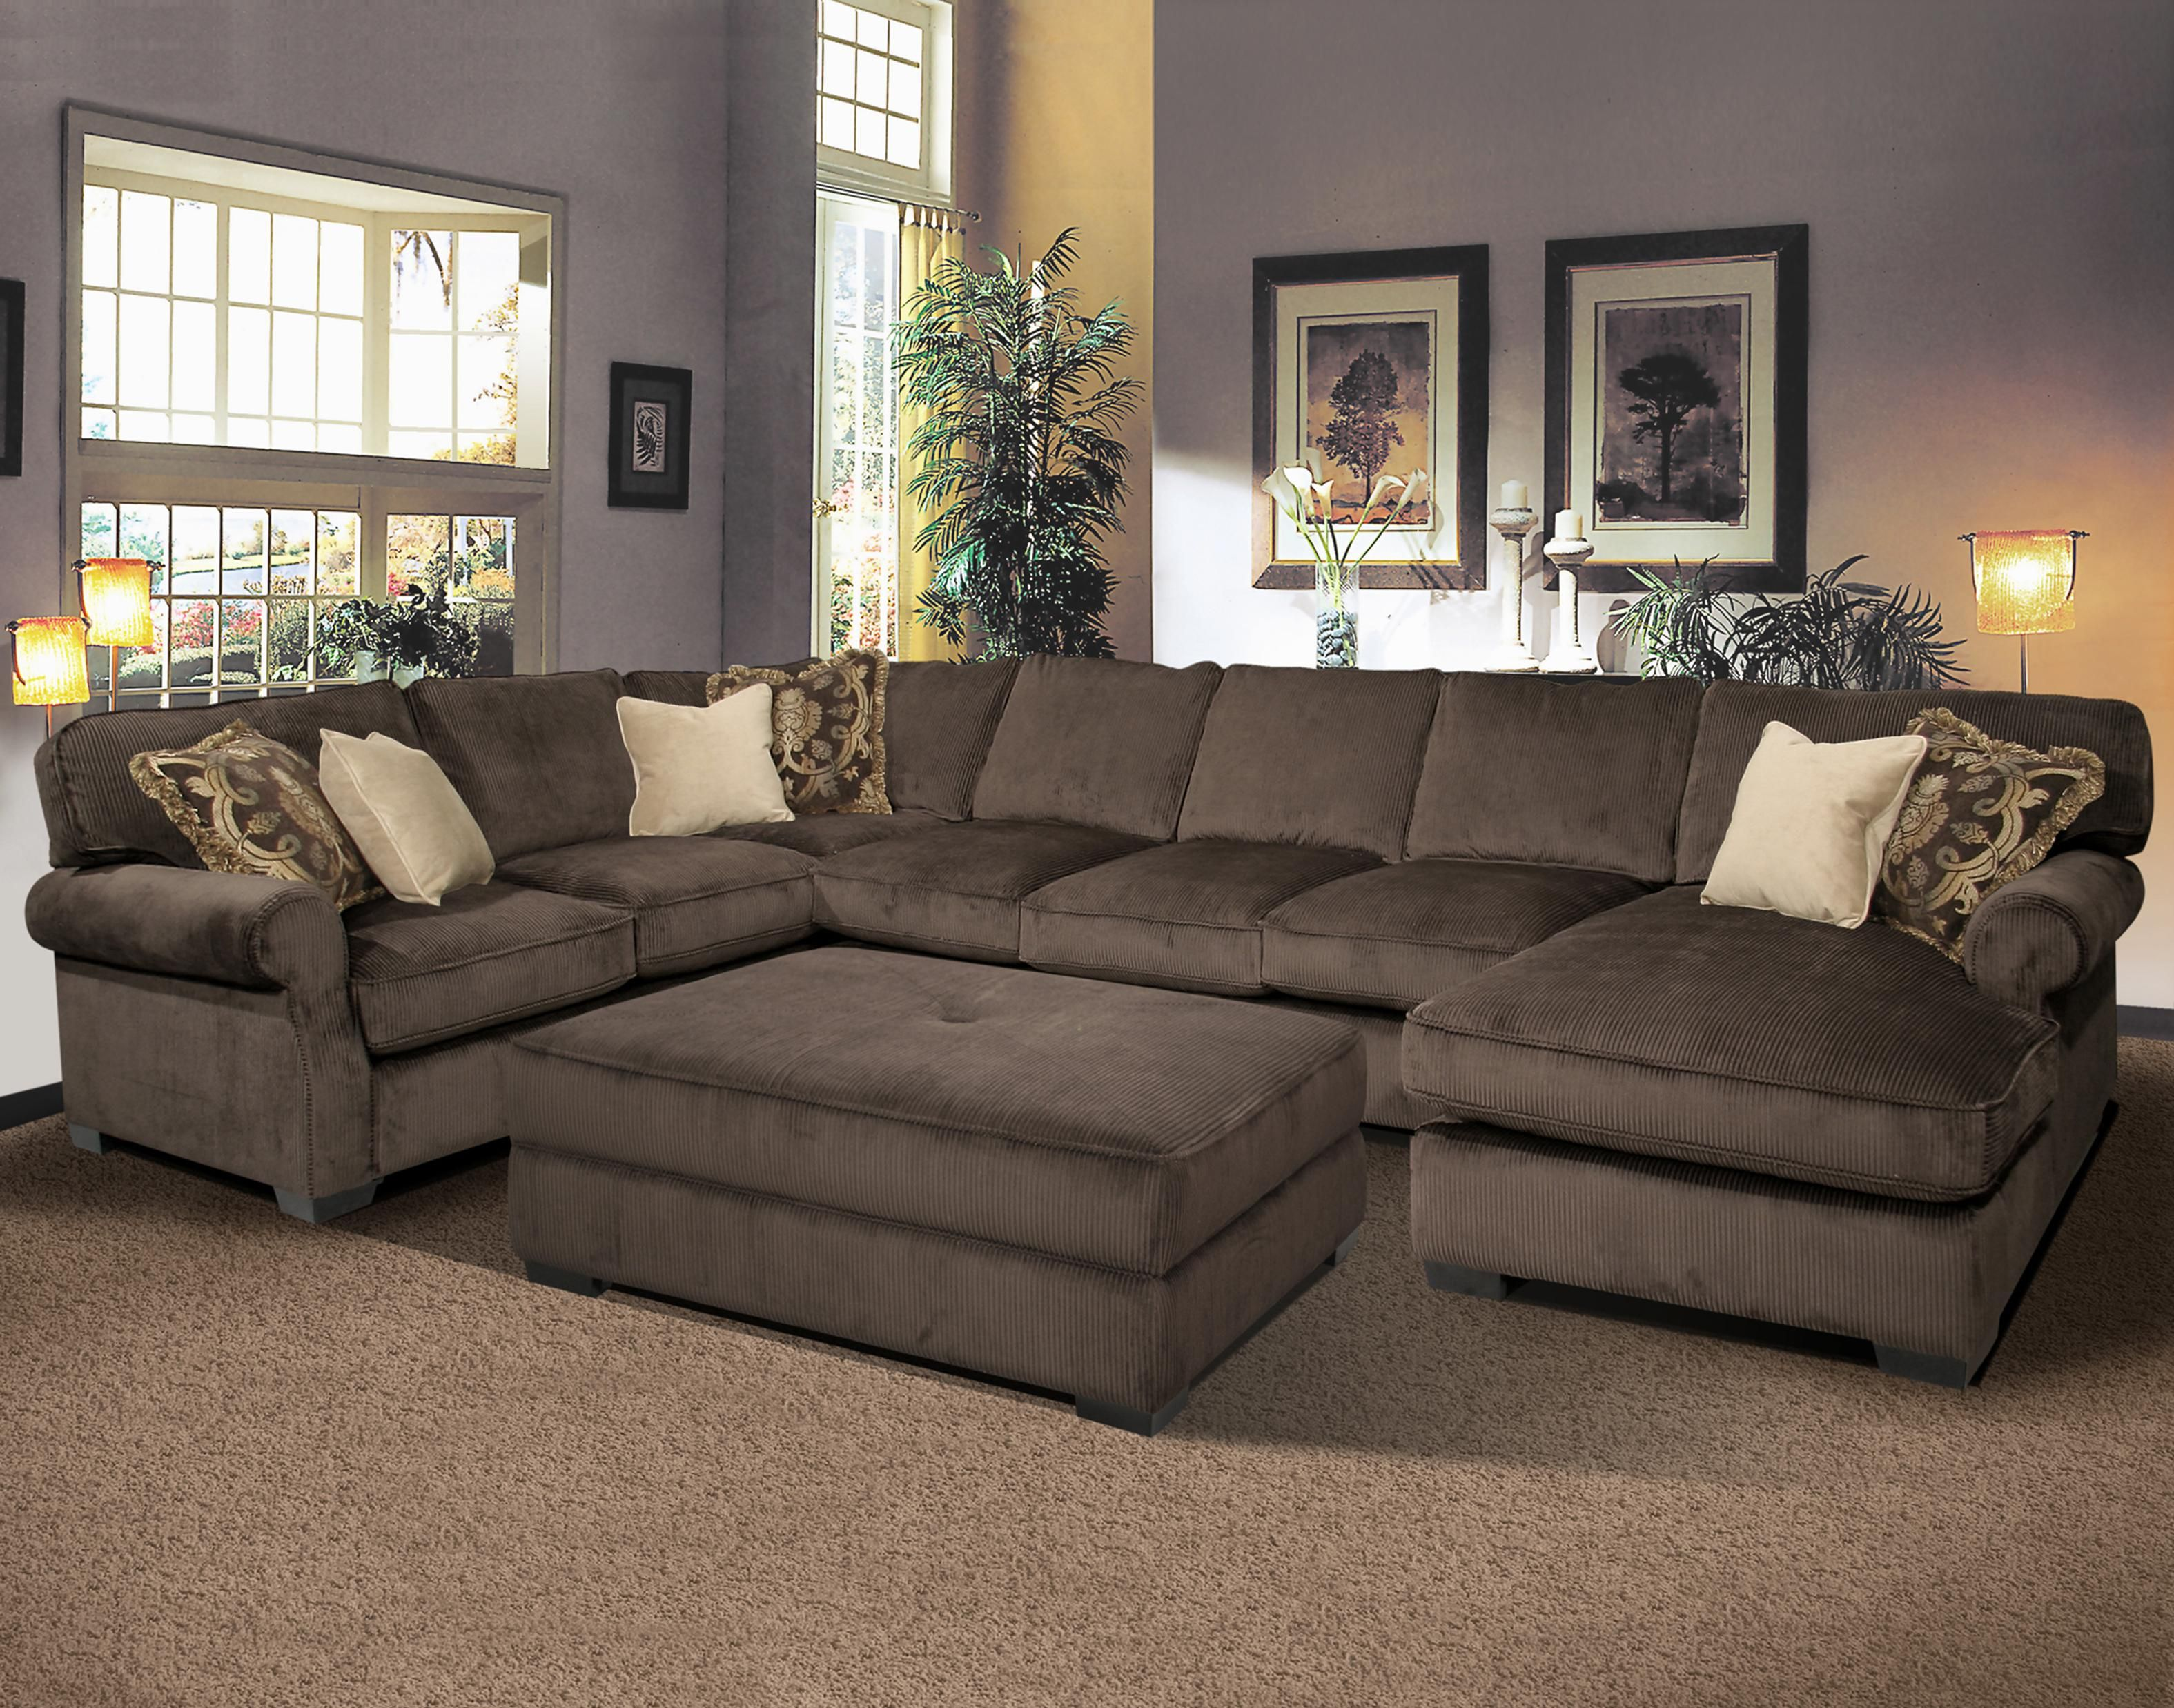 Beautiful BIG AND COMFY Grand Island Large, 7 Seat Sectional Sofa With Right Side  Chaise By